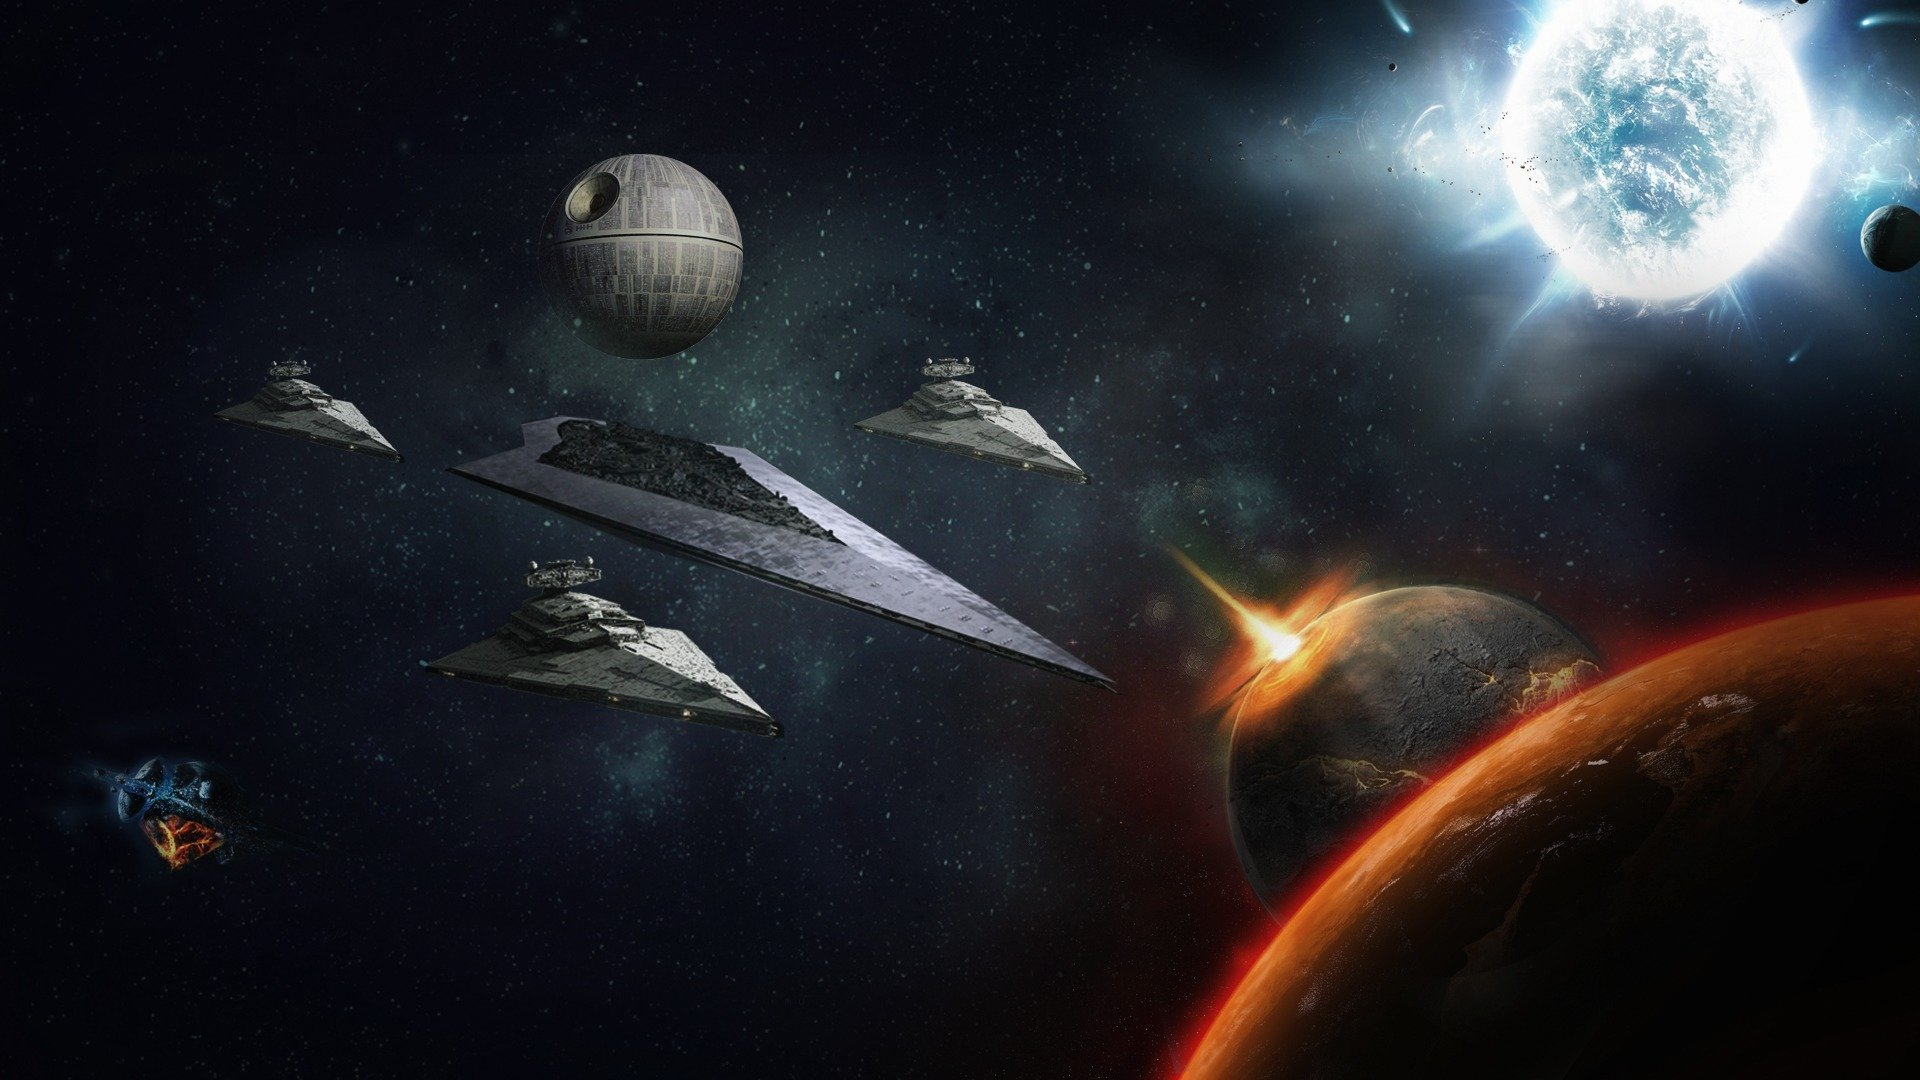 star wars desktop wallpapers star-wars-desktop-wallpapers10-600x338